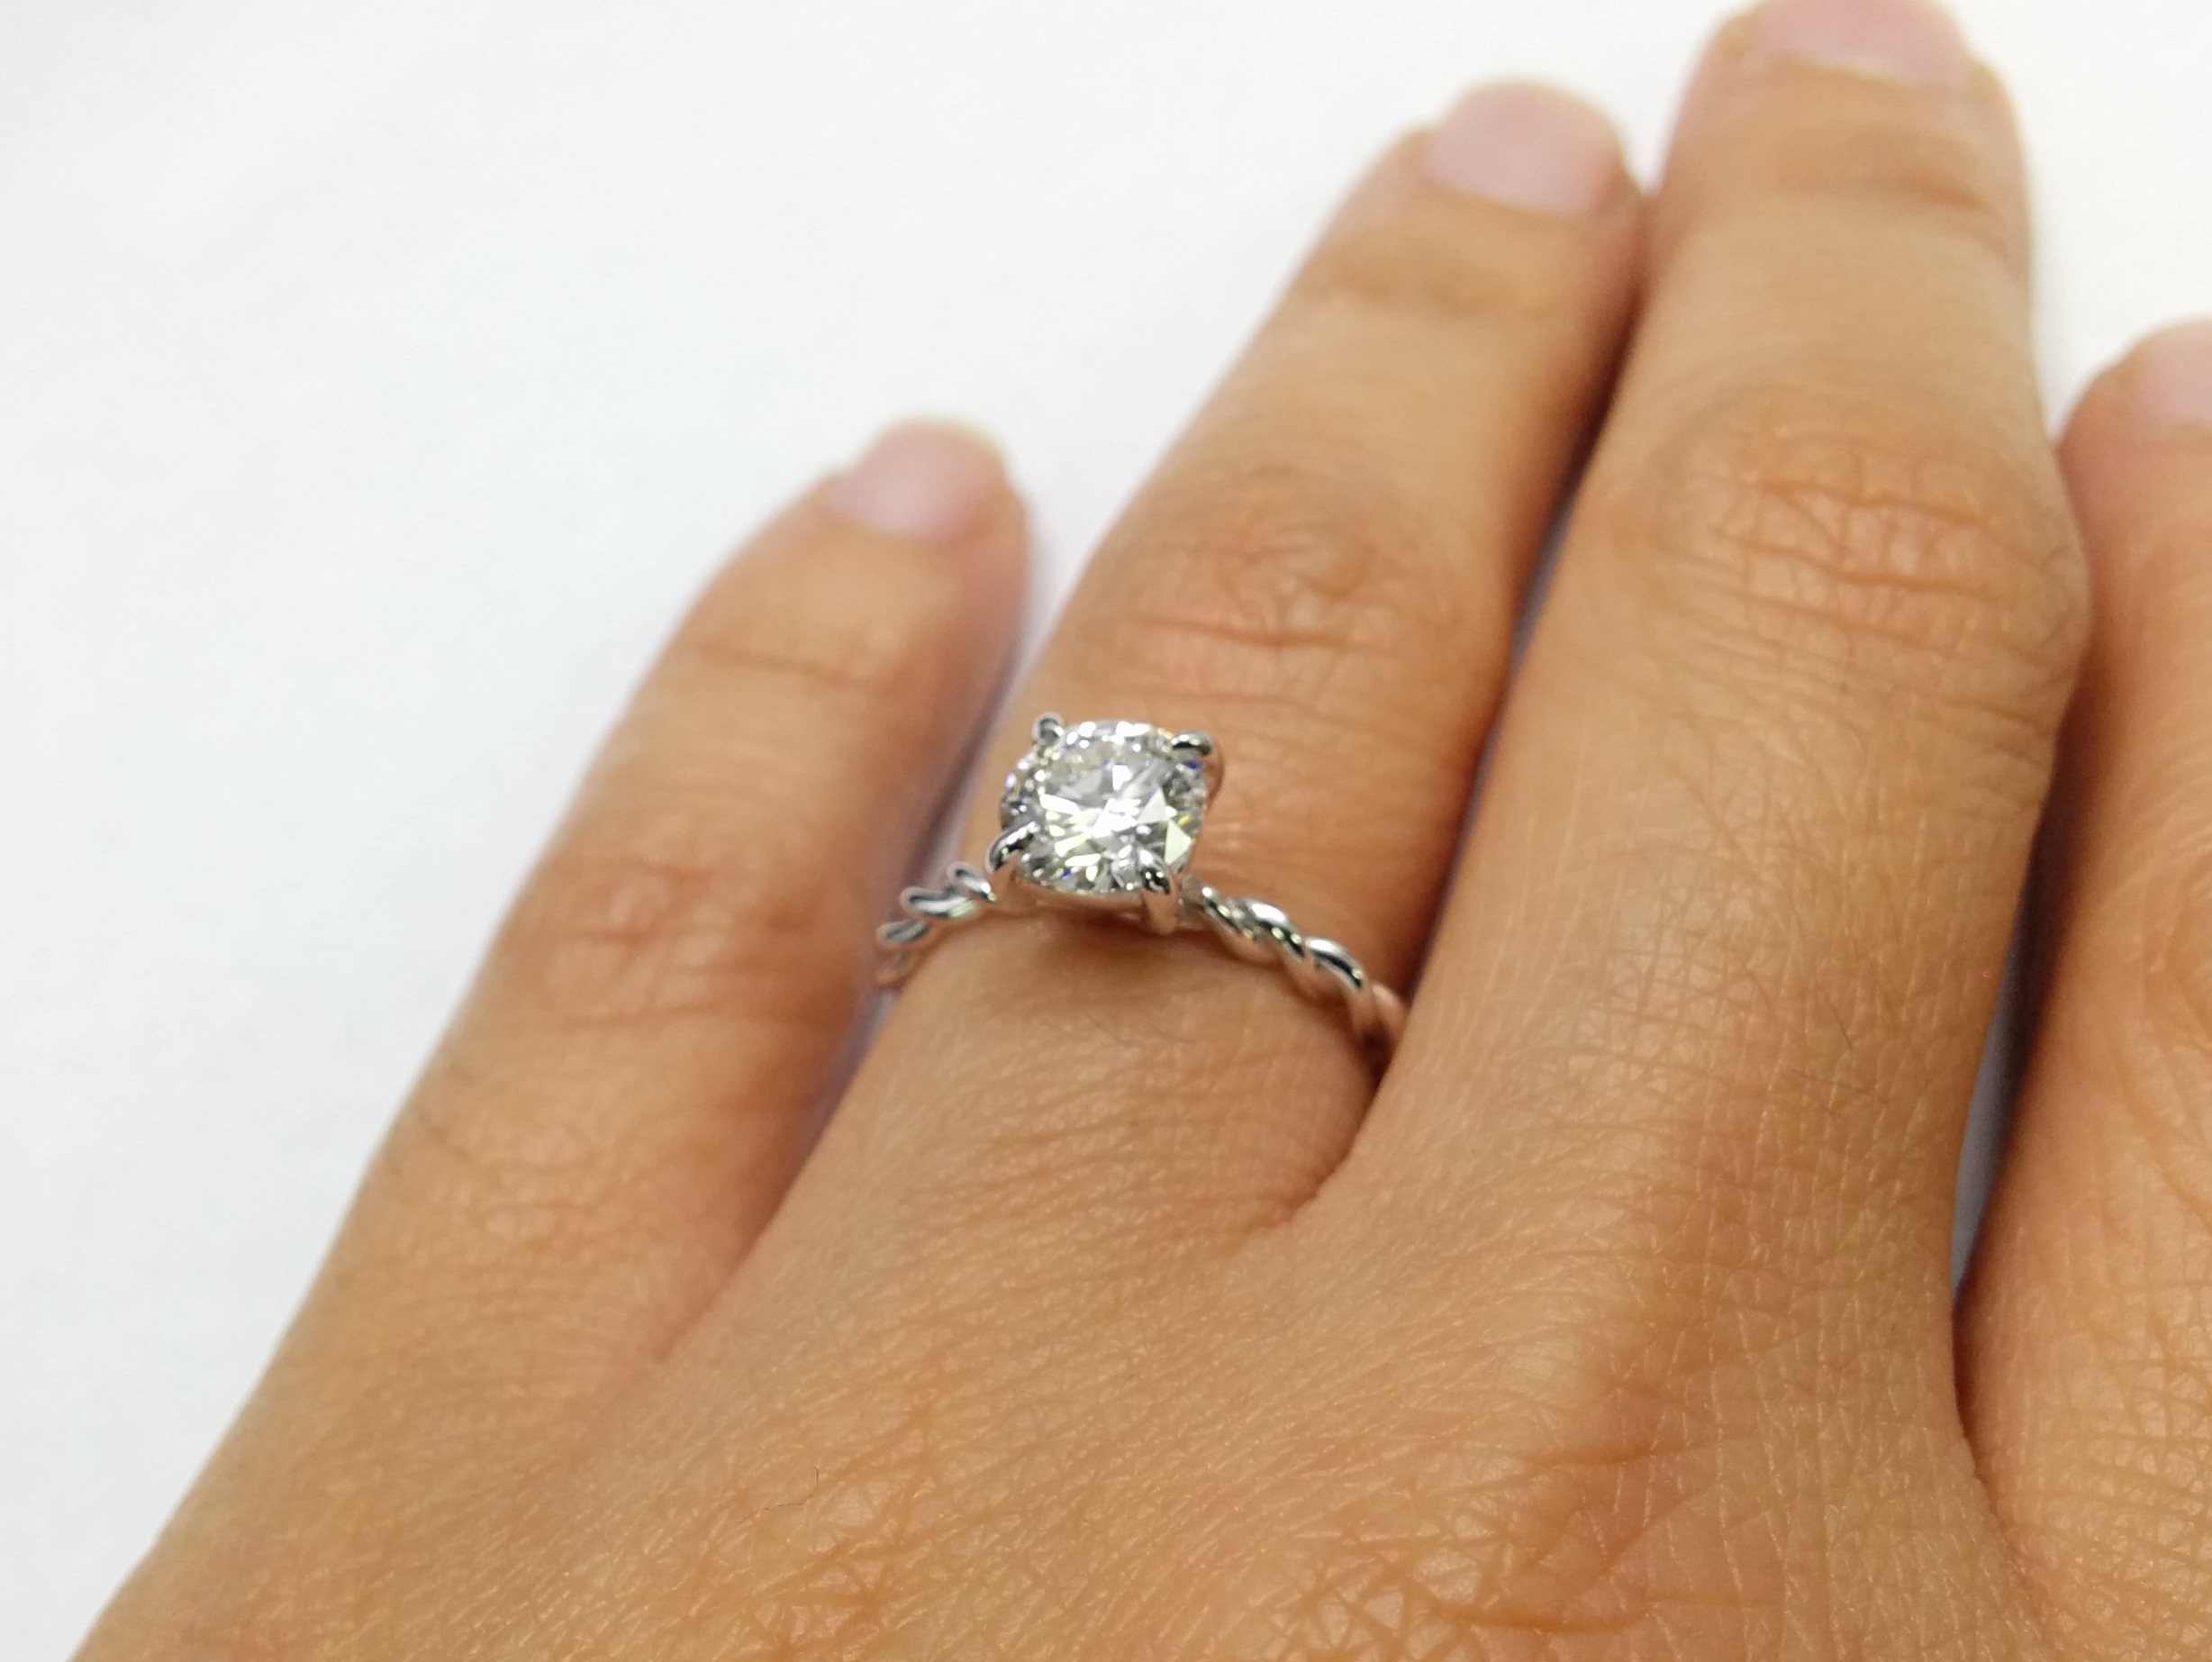 Diamond Band Engagement Rings With 30 Day Returns Buy Now